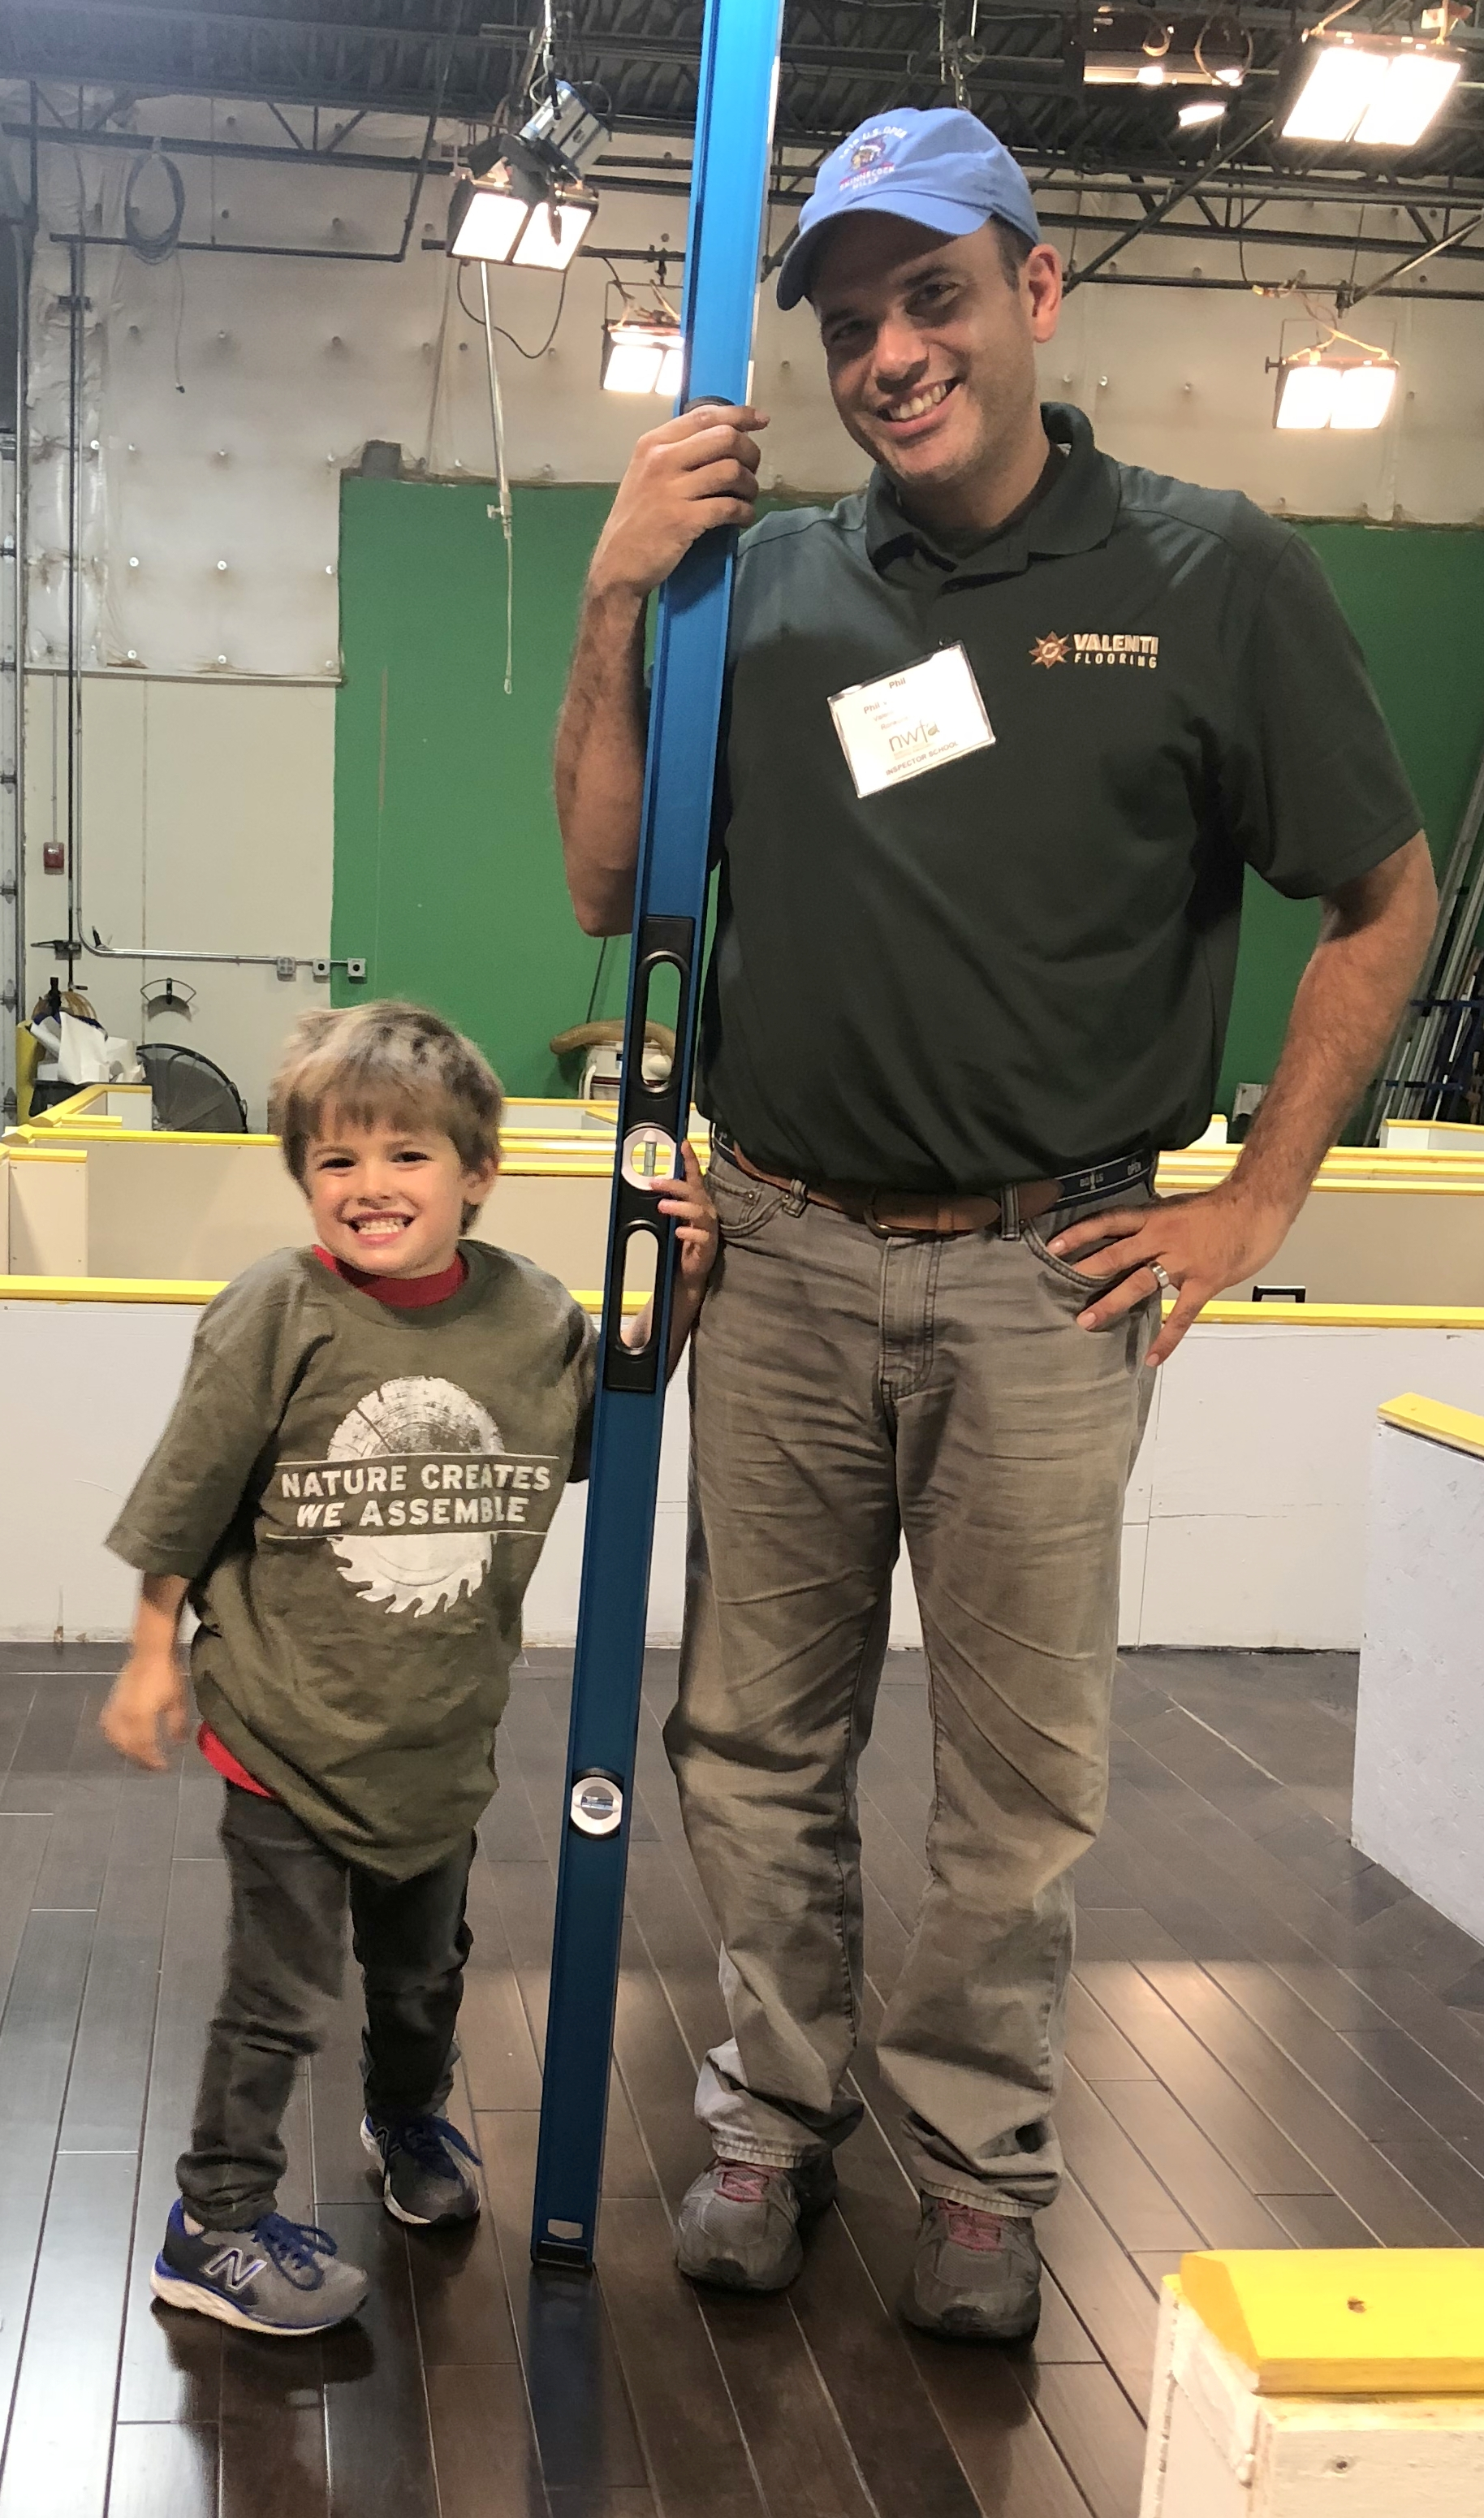 Nash Valenti and Phil Valenti at NWFA Inspector School & Training at NWFA Headquarters in Chesterfield, MO. Nash is modeling our fav NWFA T-shirt.